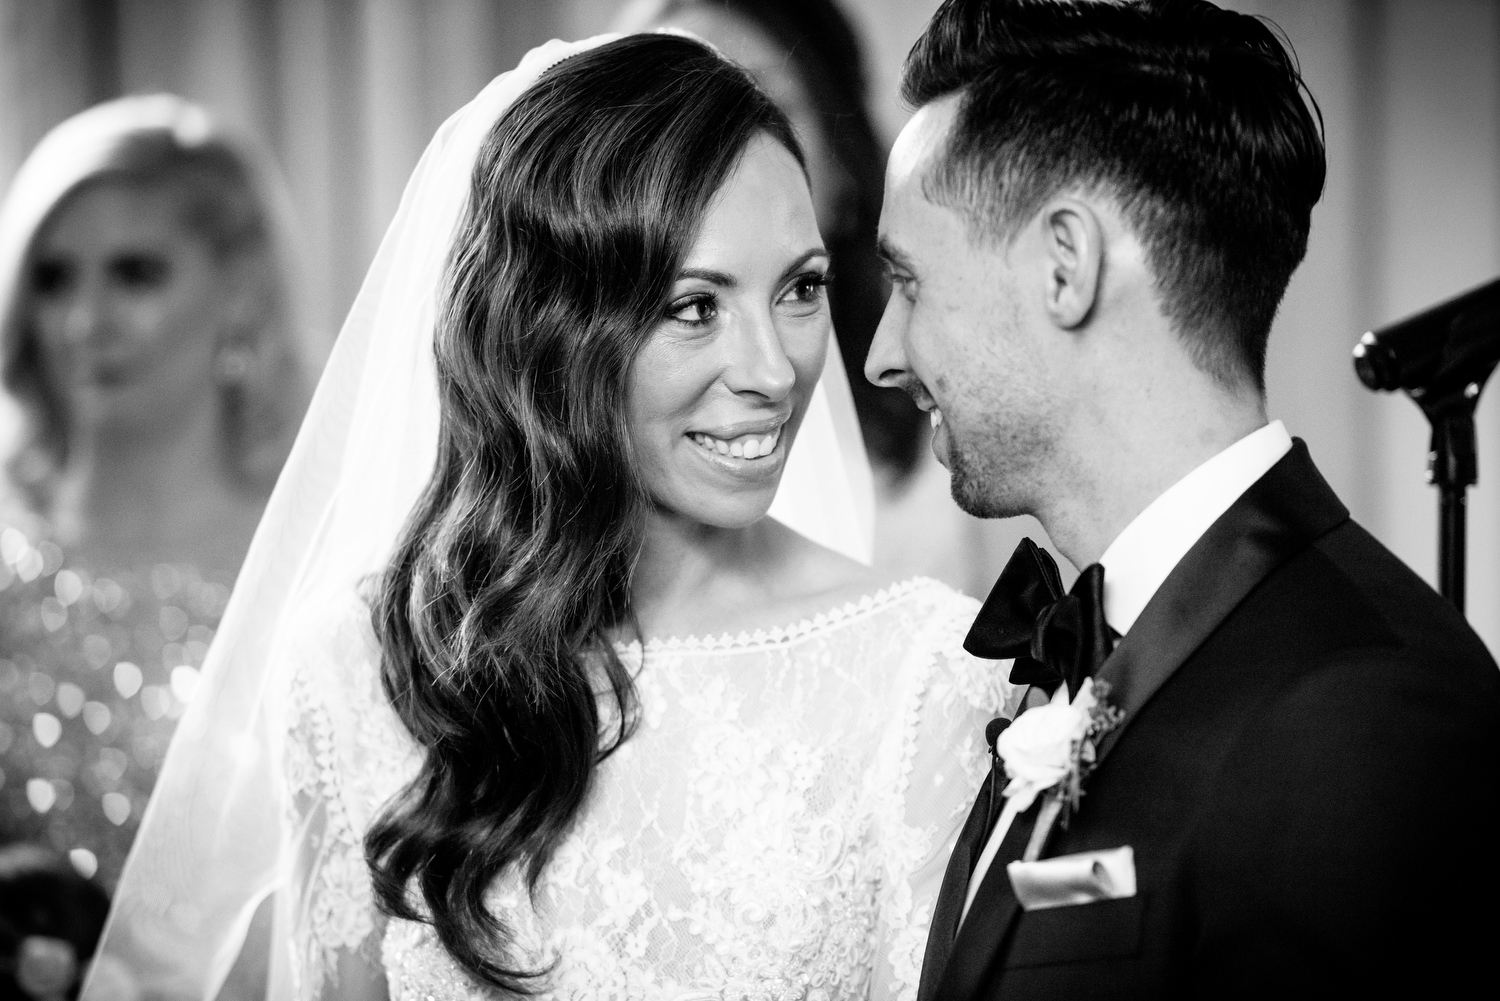 Bride and groom share a moment during their Thompson Chicago wedding ceremony.